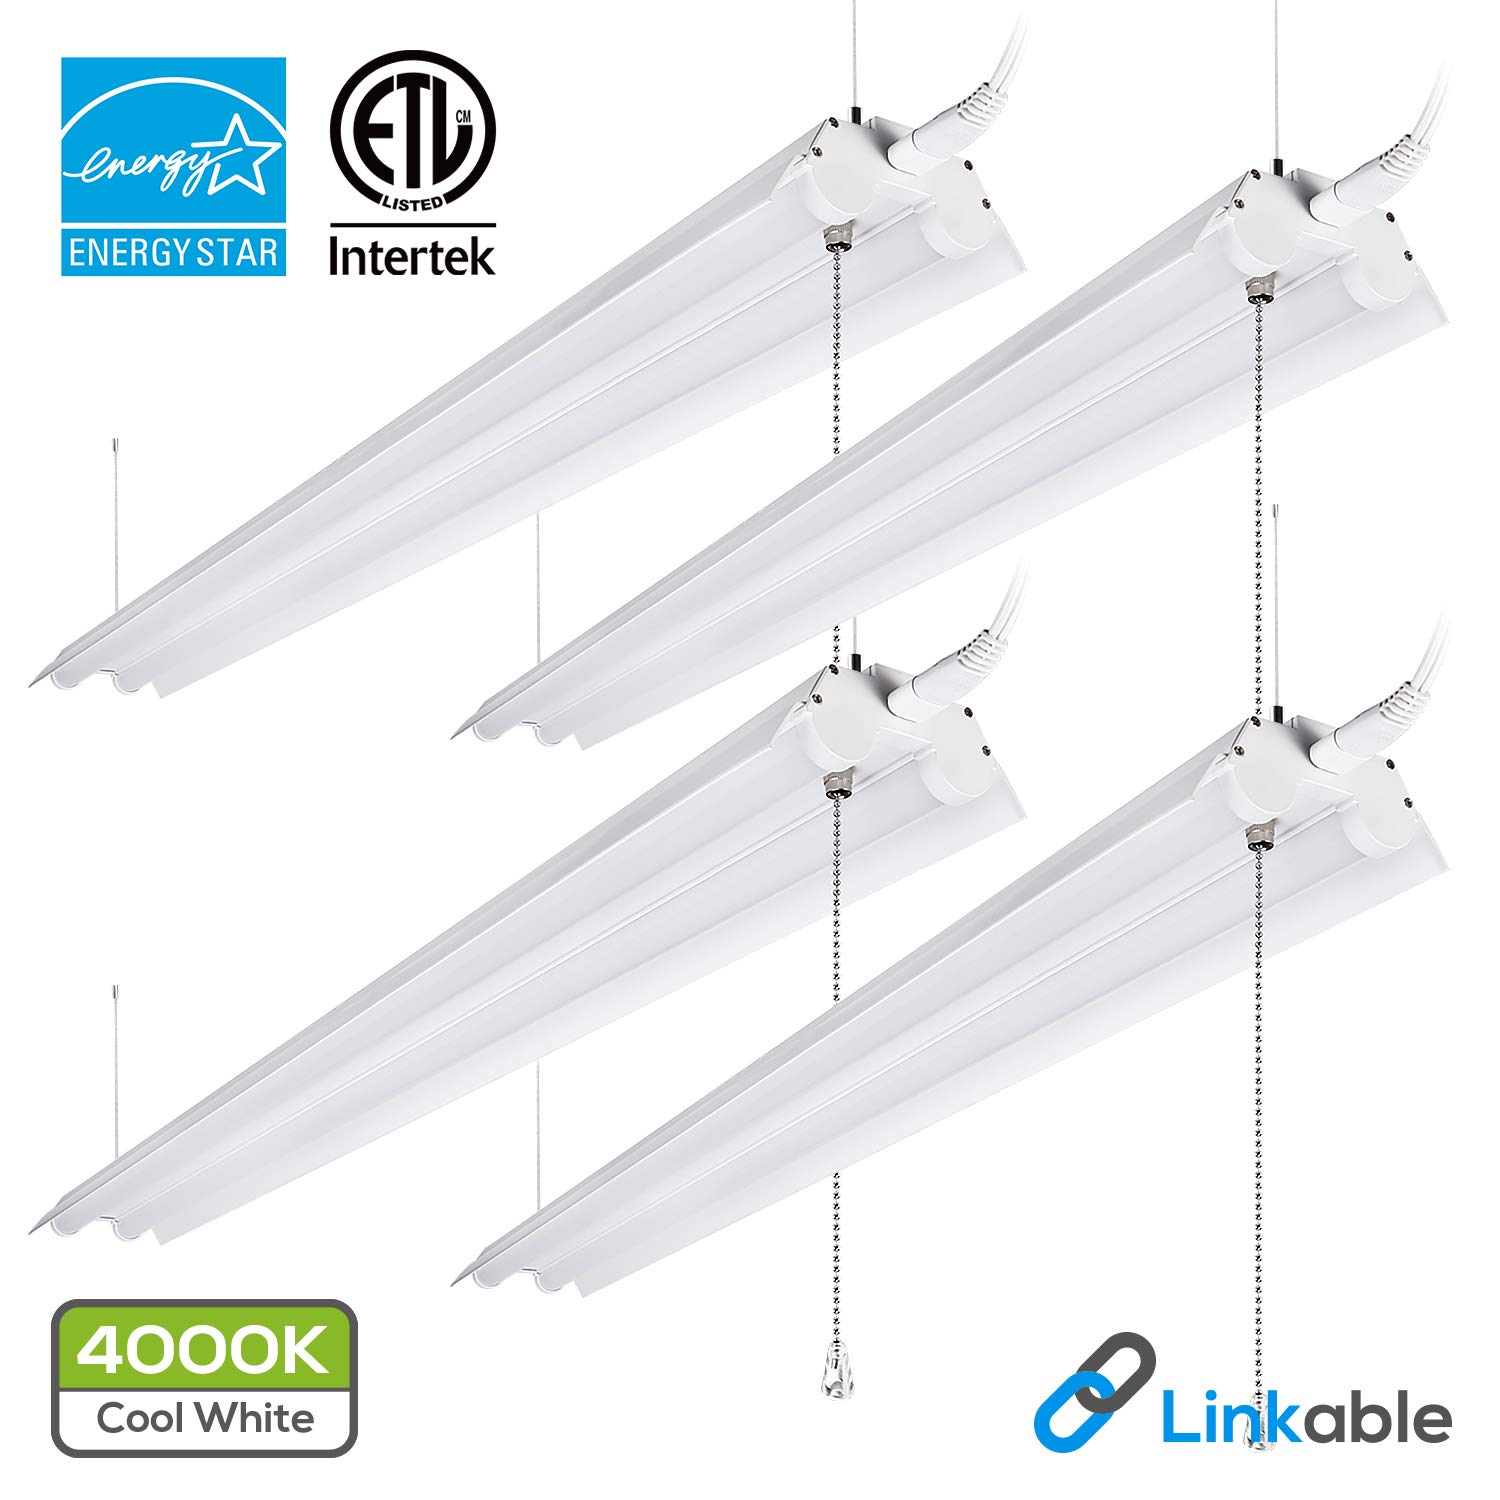 LeonLite 40W 4ft Linkable LED Utility Shop Light, Double-Tube T8 LED, 4000lm 120W Equivalent, ETL & Energy Star Certified Suit for Garage, Workbench, Office, Warehouse, 4000K Cool White, Pack of 4